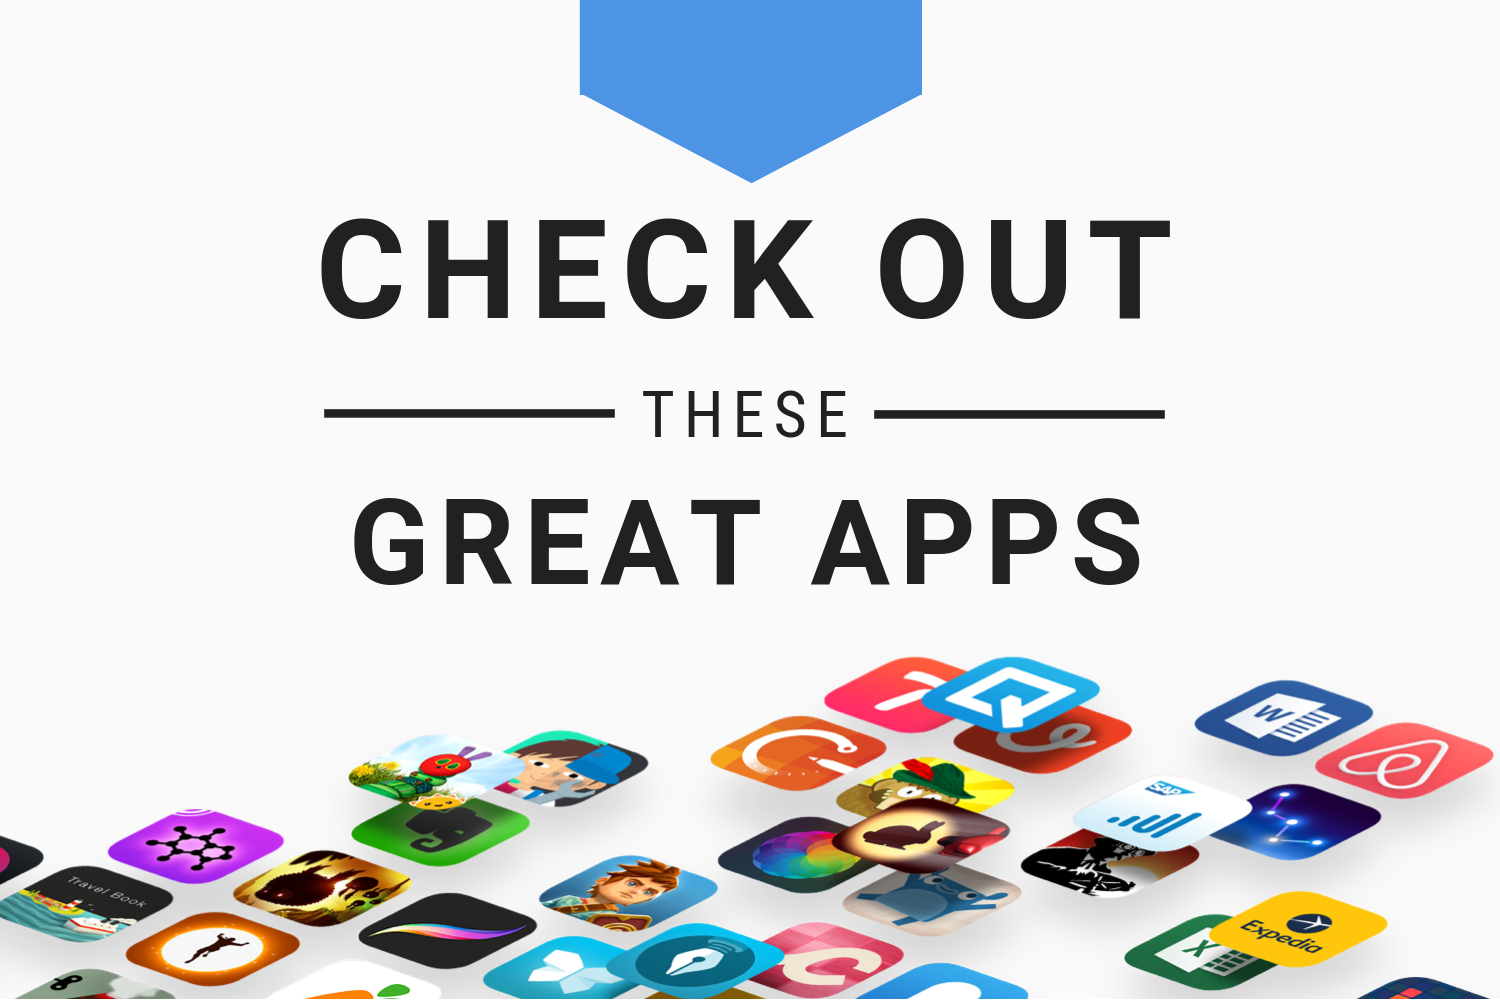 Zipnote, Vochi, Cocoon and other apps to check out this weekend